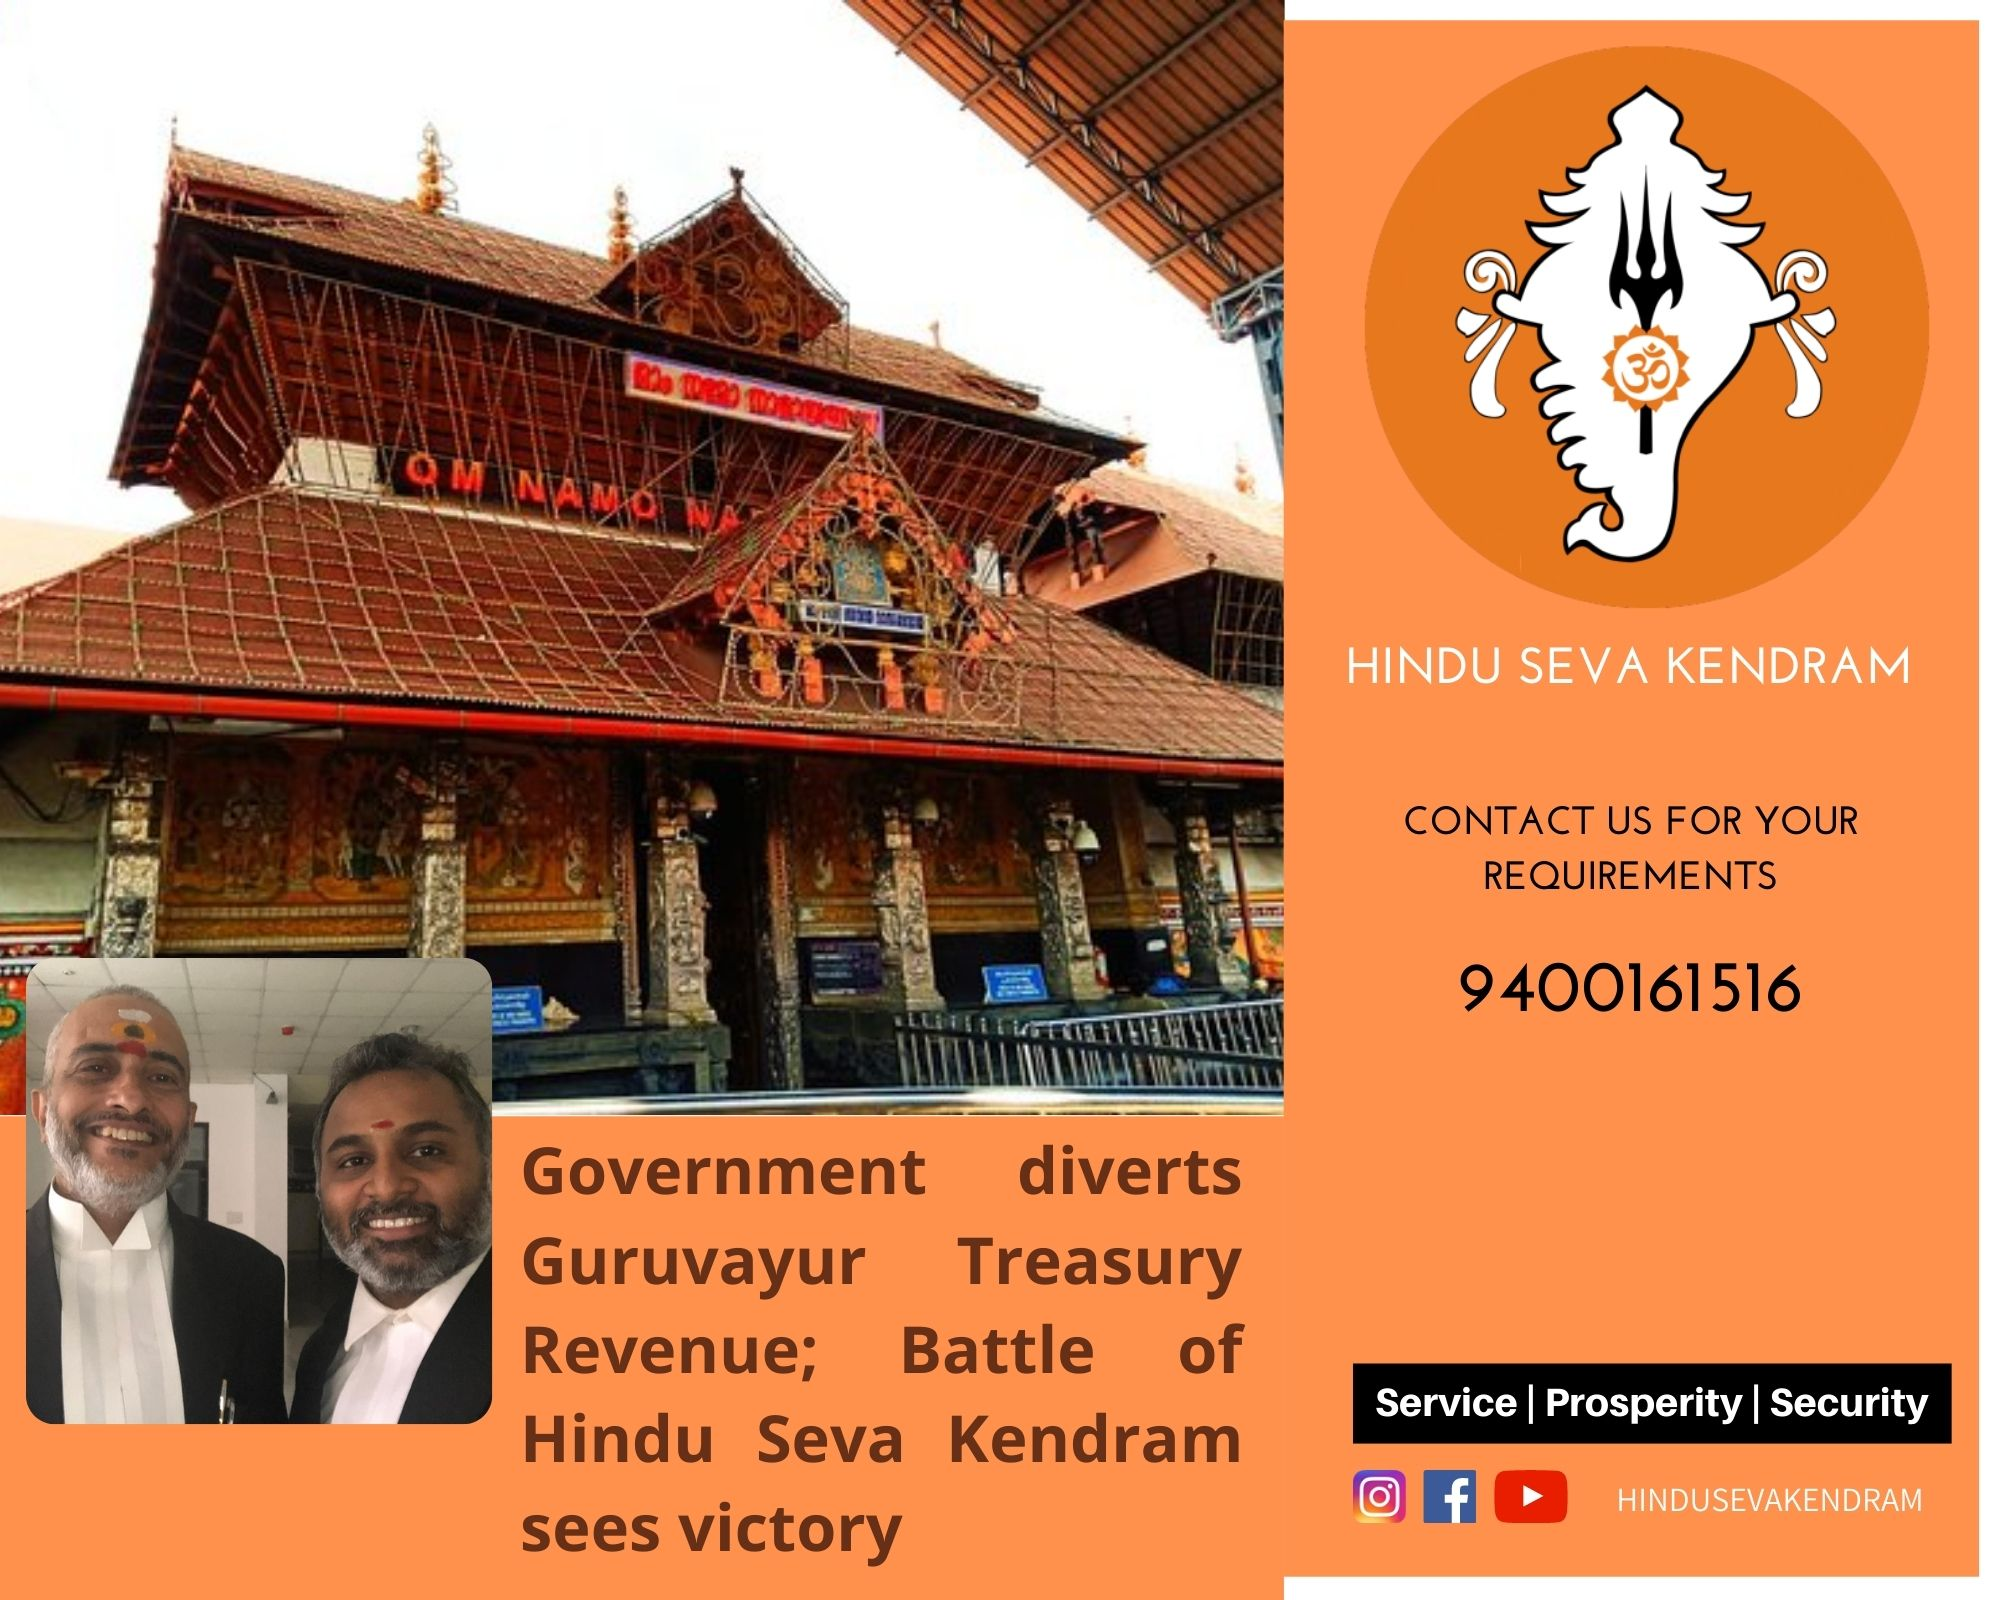 Government diverts Guruvayur Treasury Revenue; The Battle of the Hindu Seva Kendra sees victory!